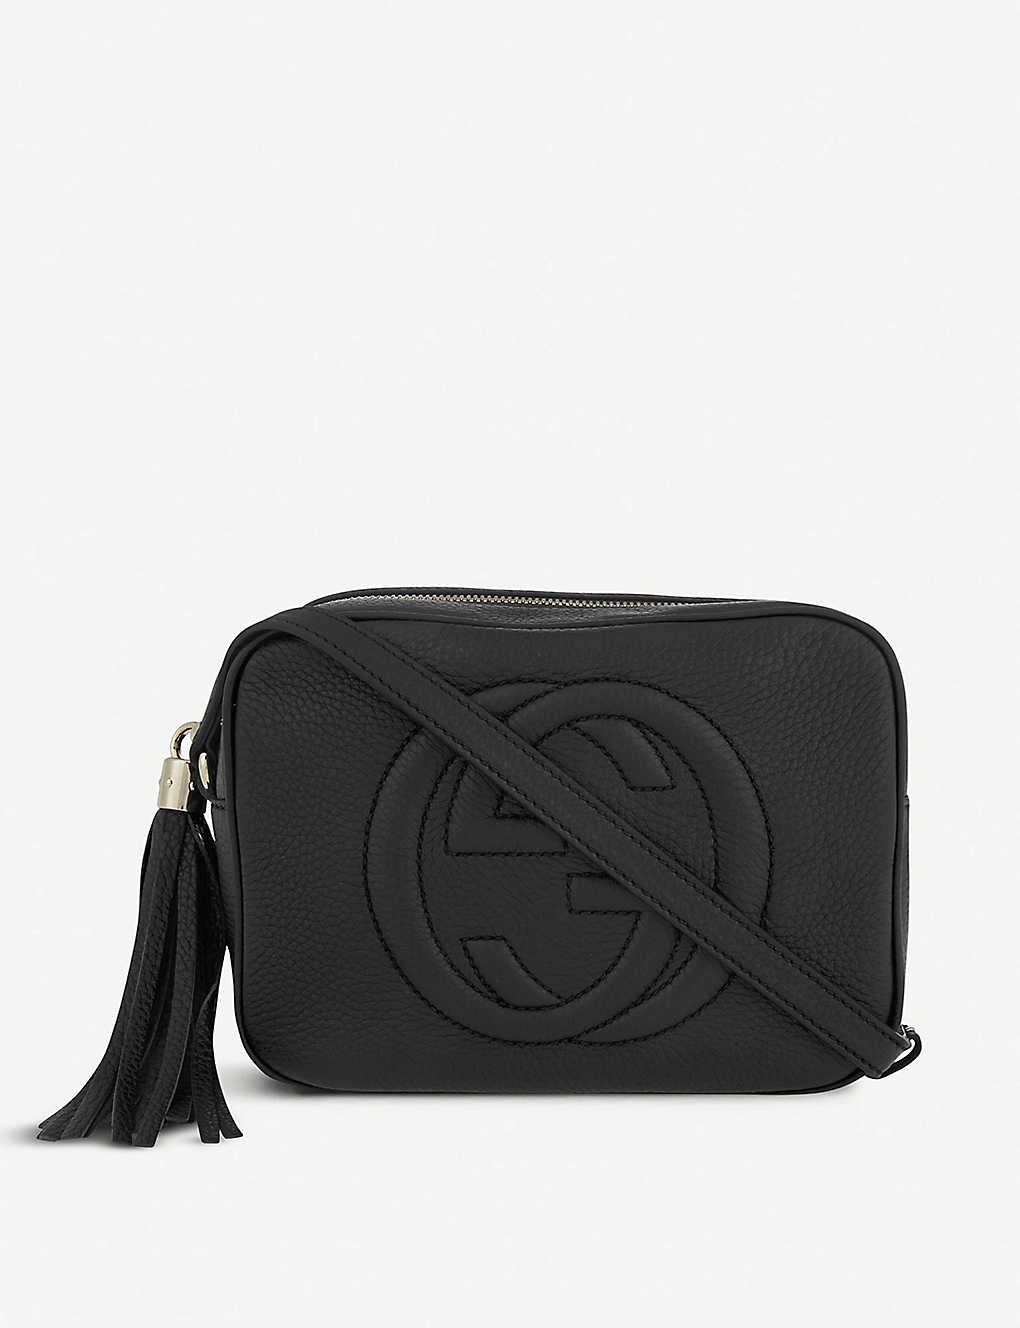 a94c9f716b17f0 GUCCI - Soho leather cross-body bag | Selfridges.com